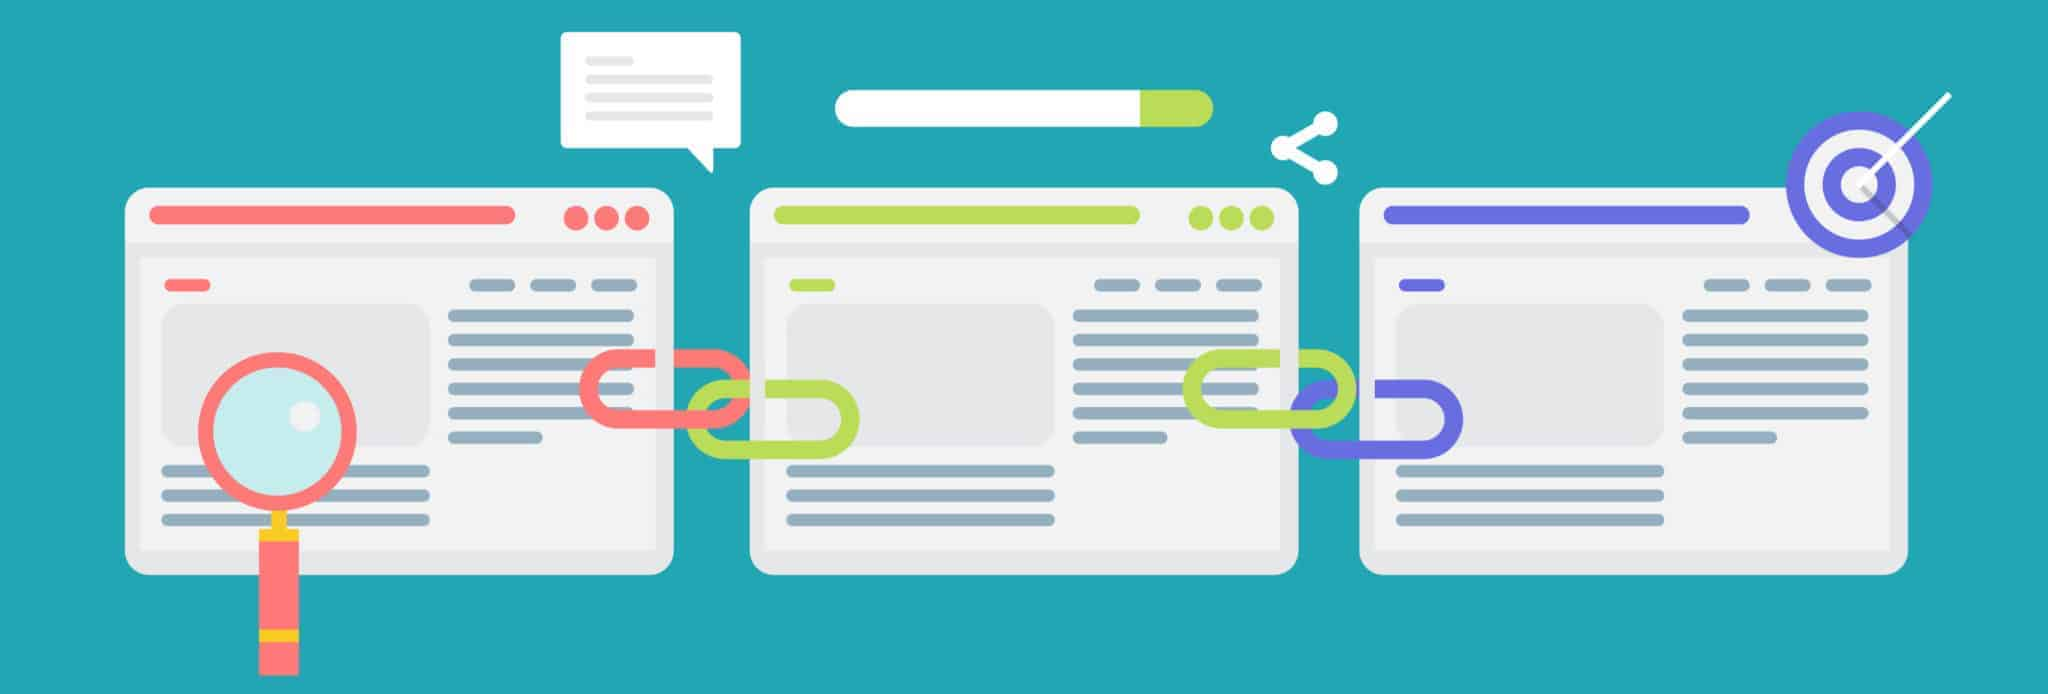 Comment obtenir des backlinks pour son site internet ?